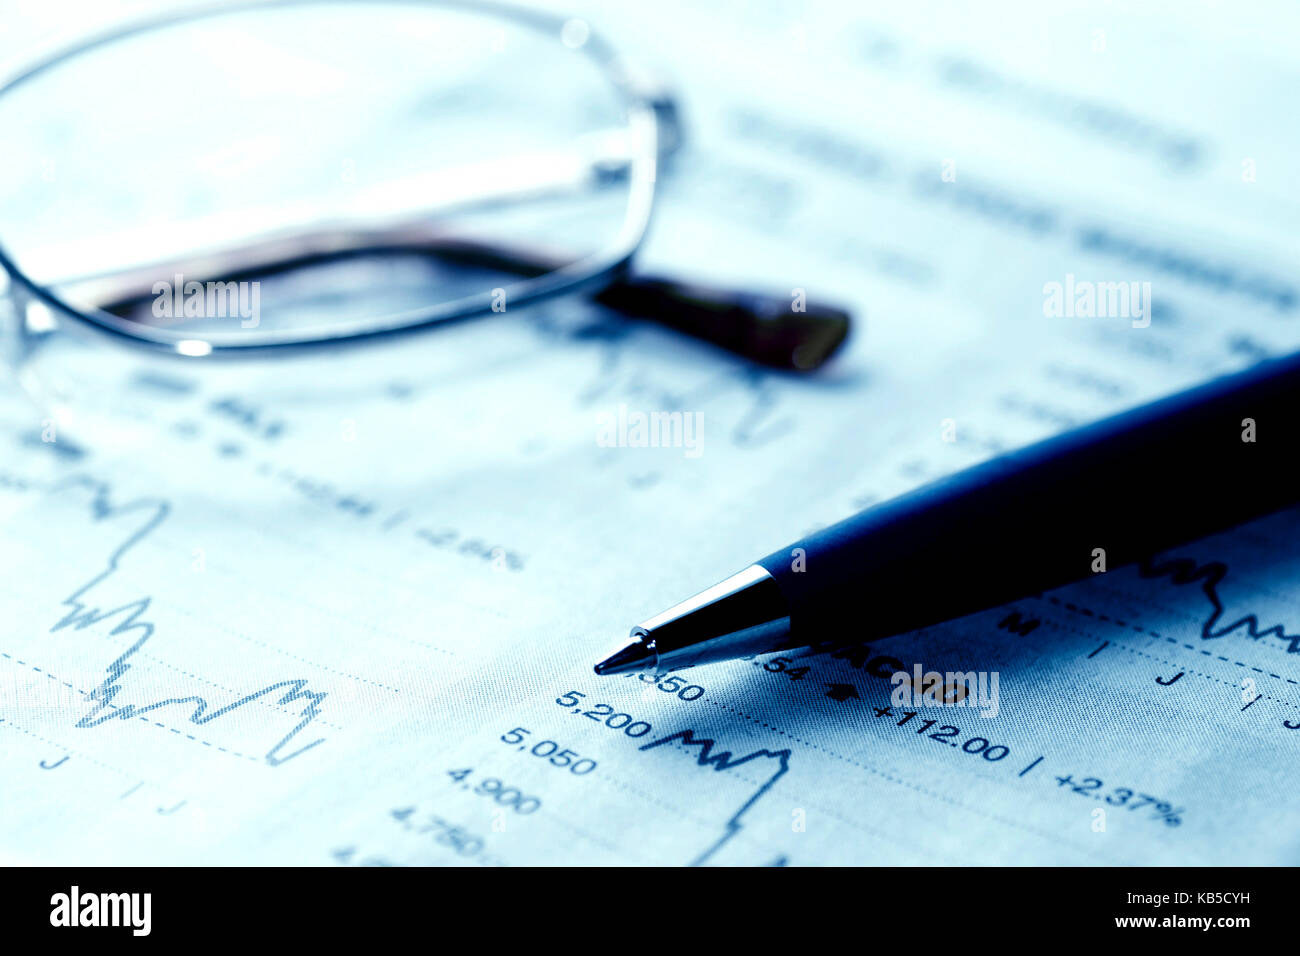 financial graph and pen, stock markets concept - Stock Image